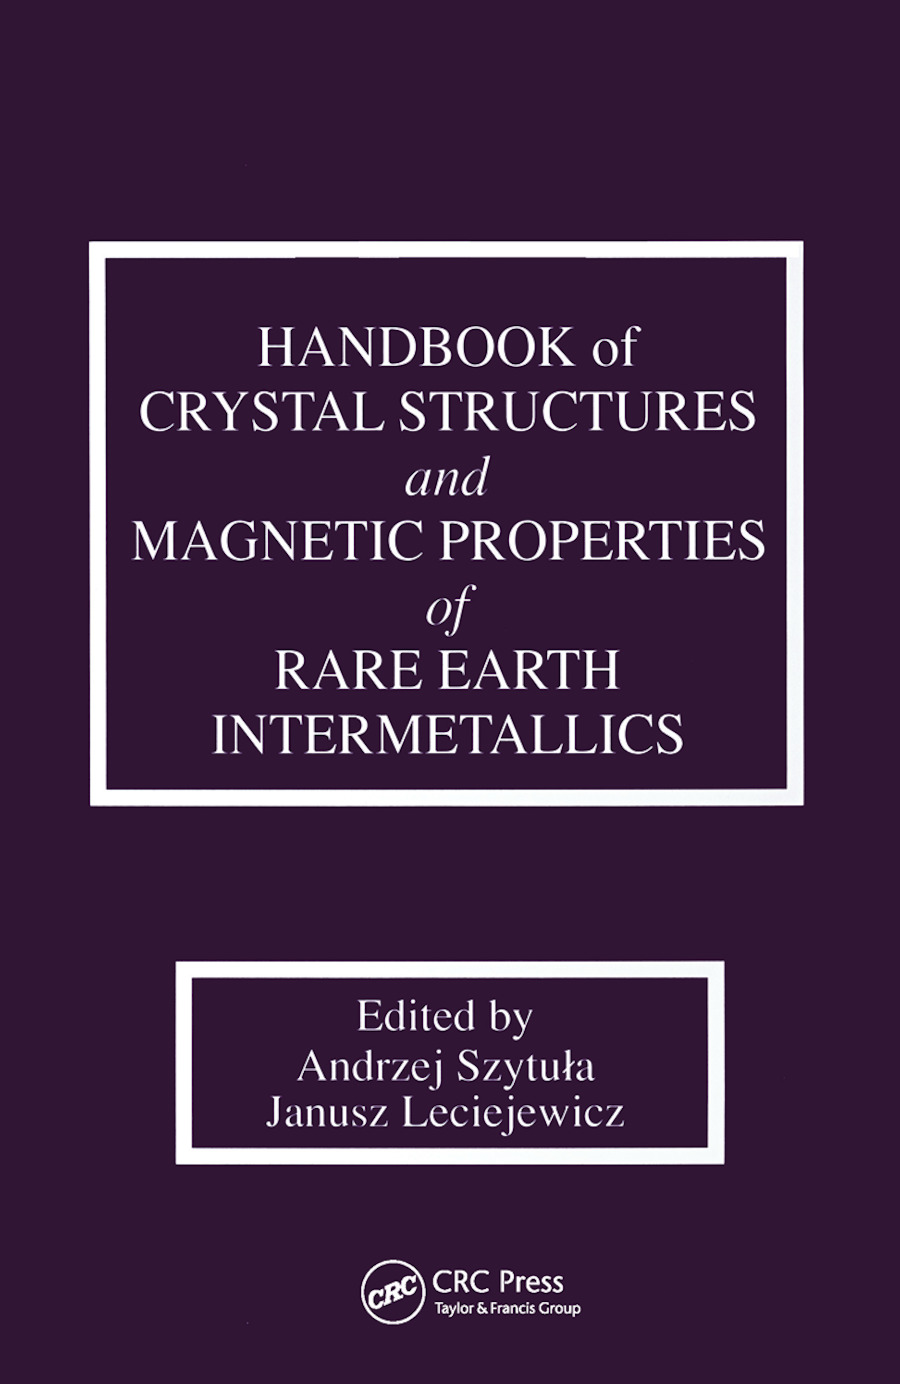 Handbook of Crystal Structures and Magnetic Properties of Rare Earth Intermetallics book cover